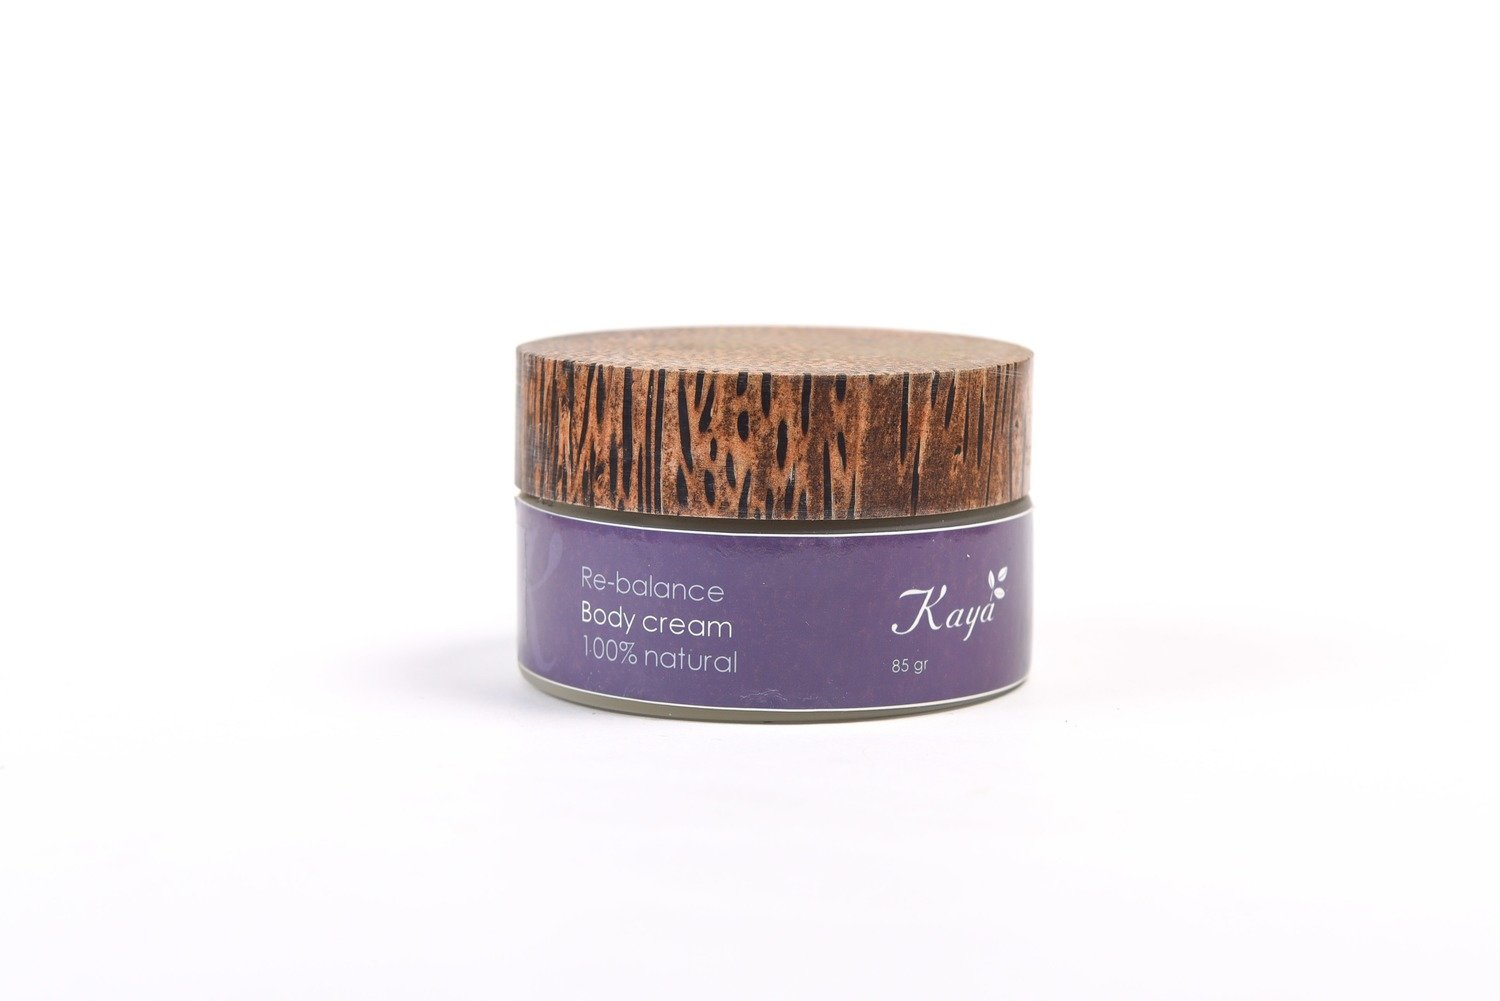 Re-Balance Body Cream, 100% Natural